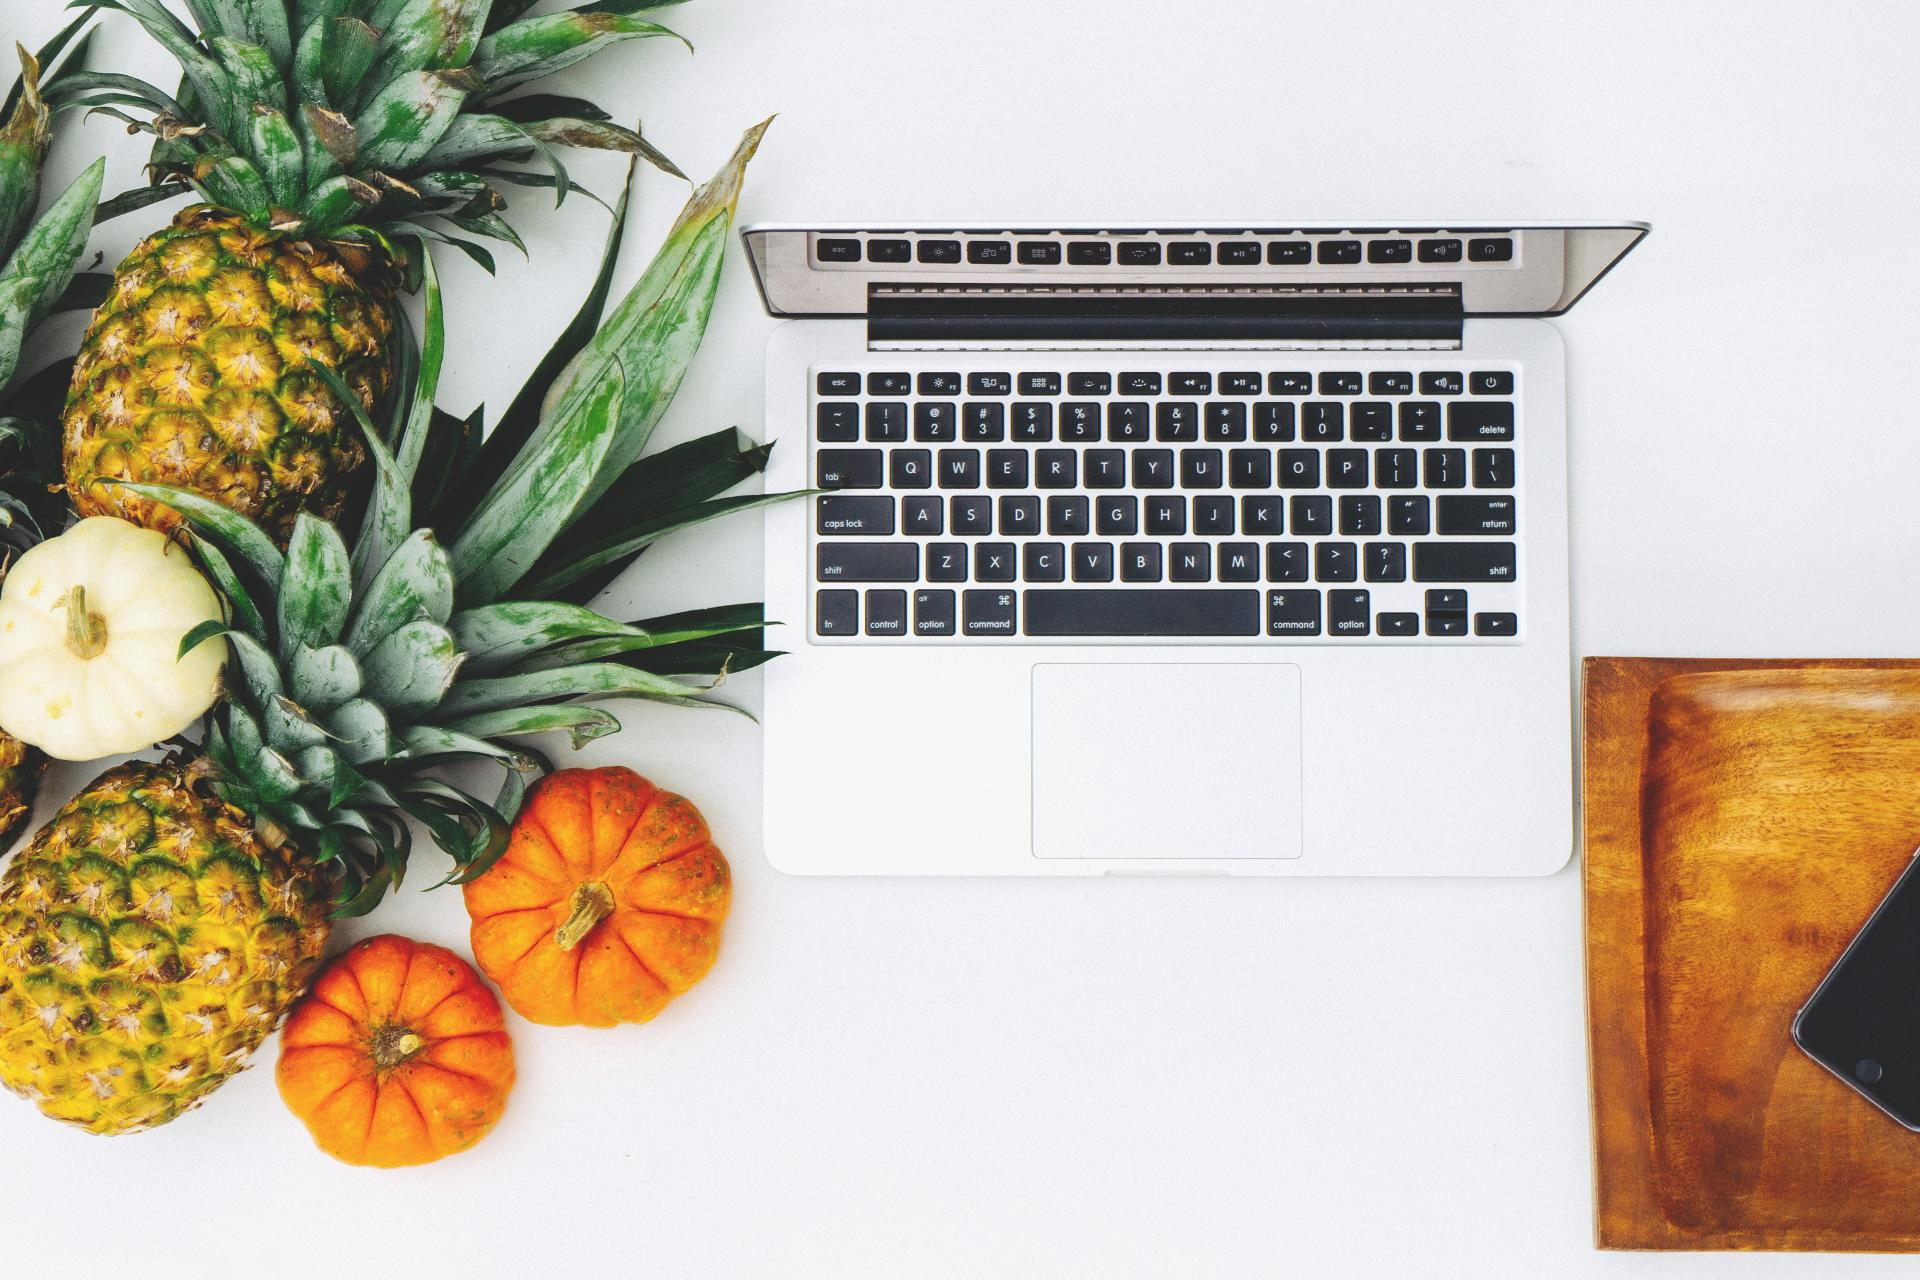 7 elements that every nutritionist website should have